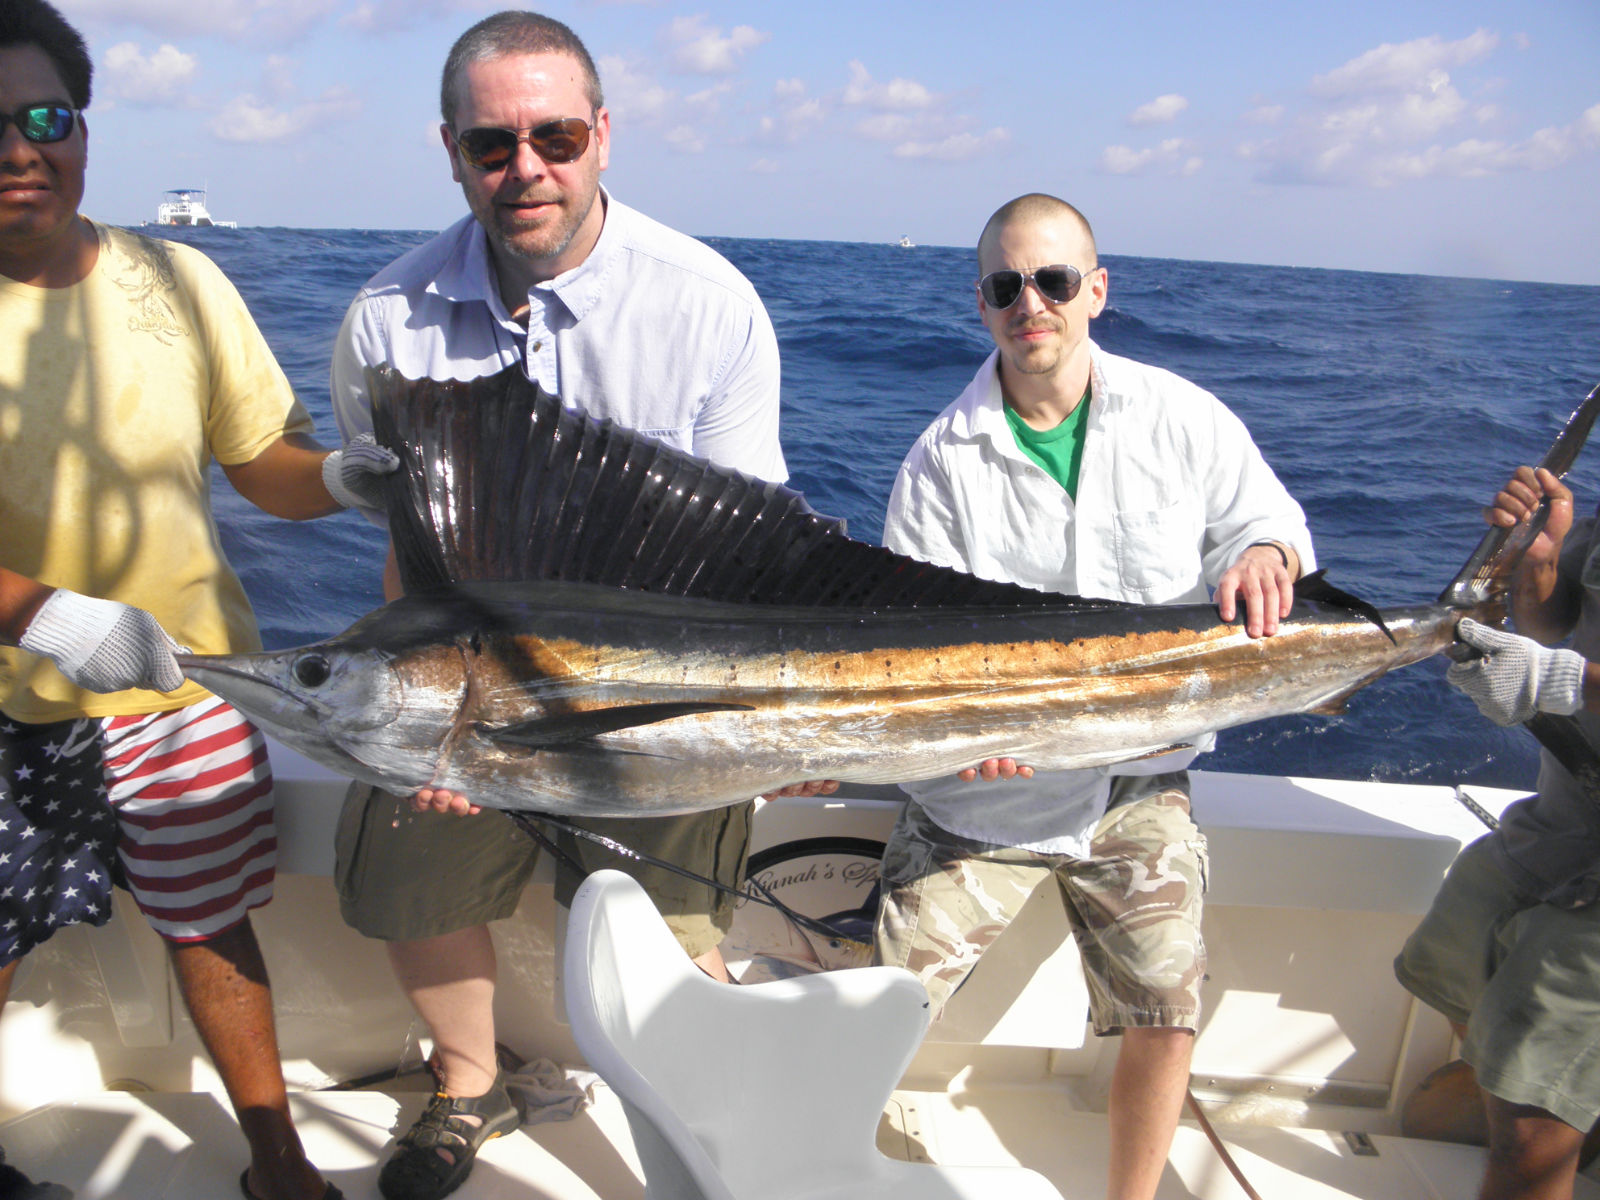 Panga cancun panga fishing sportfishing pangas cancun for Cancun fishing trips